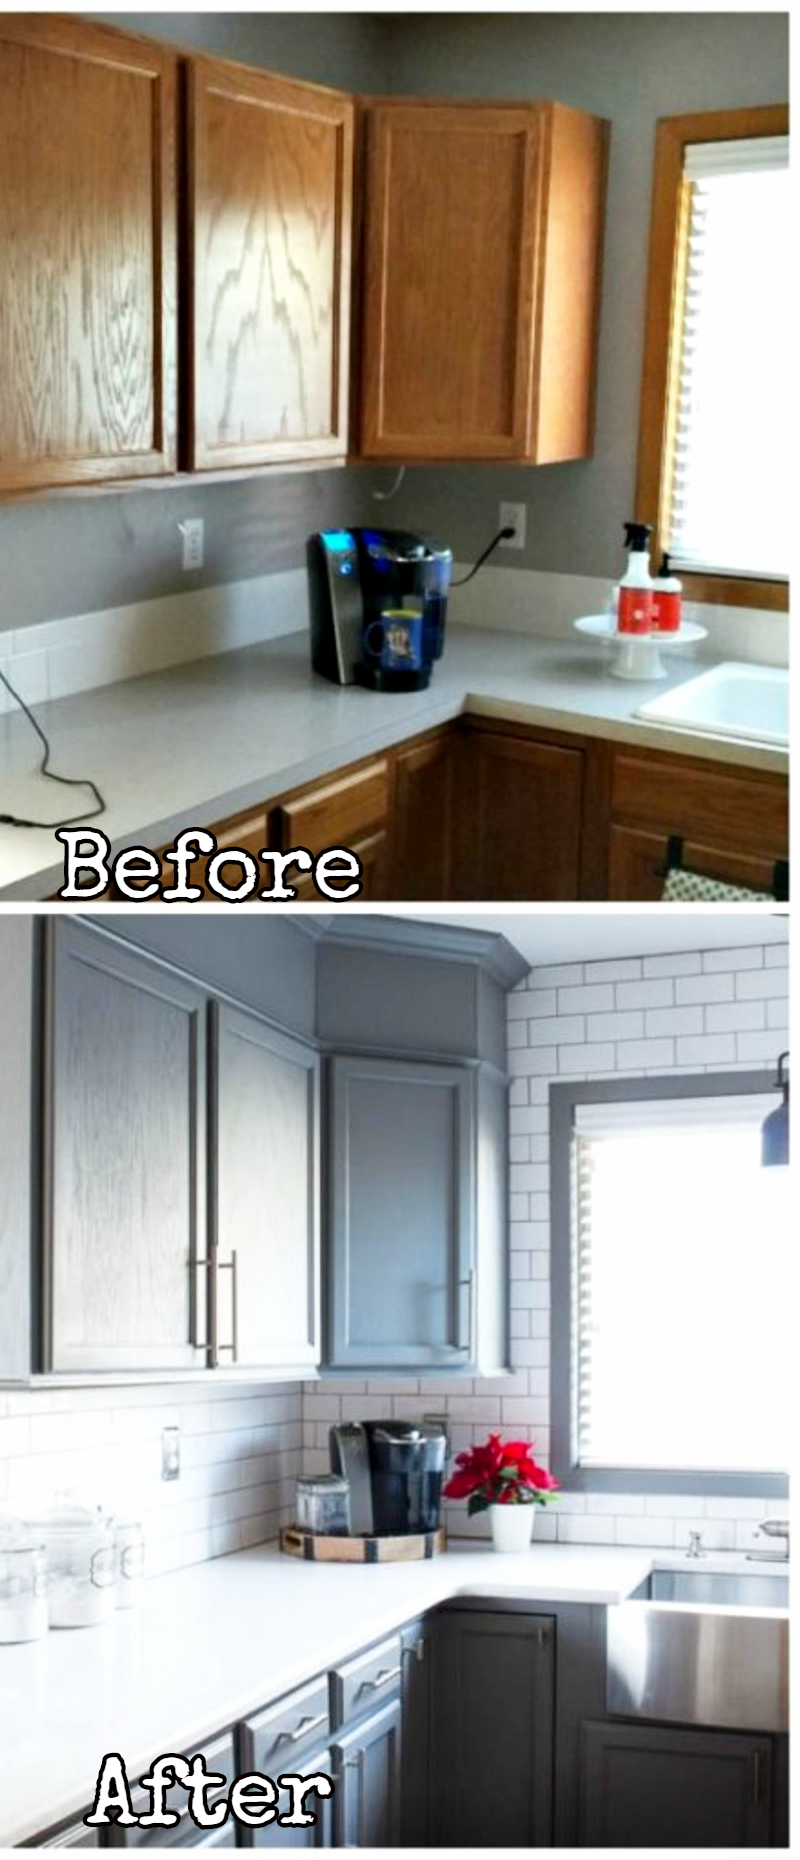 Small Kitchen Remodel   Before And After Pictures Of Small Kitchen  Makeovers #kitchenideas #farmhousedecor